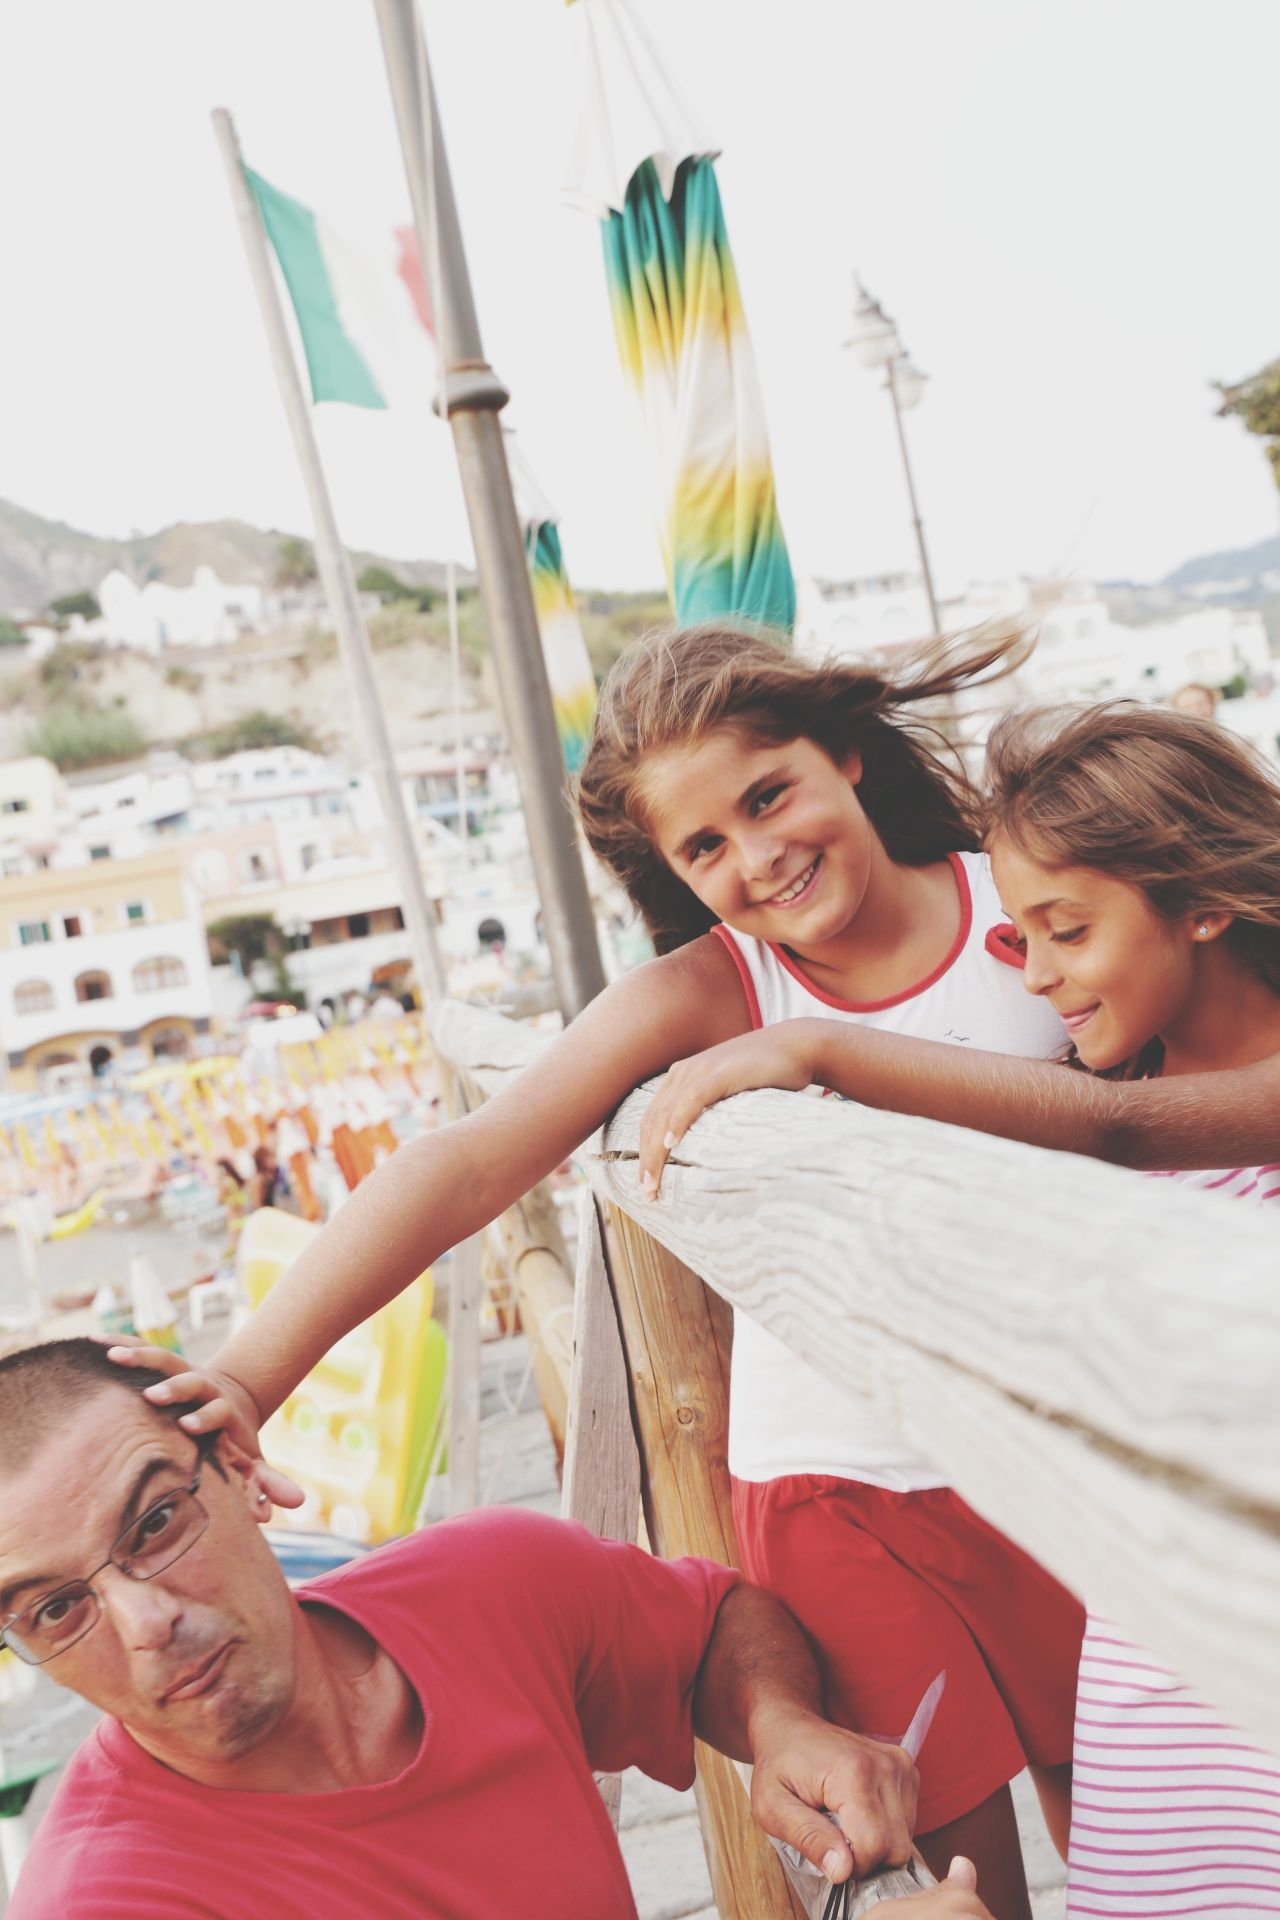 Live For The Story Togetherness Two People Smiling Adult Enjoyment Child Friendship Fun People Bonding Cheerful Holiday - Event Girls Childhood Vacations Day Happiness Females Women Outdoors